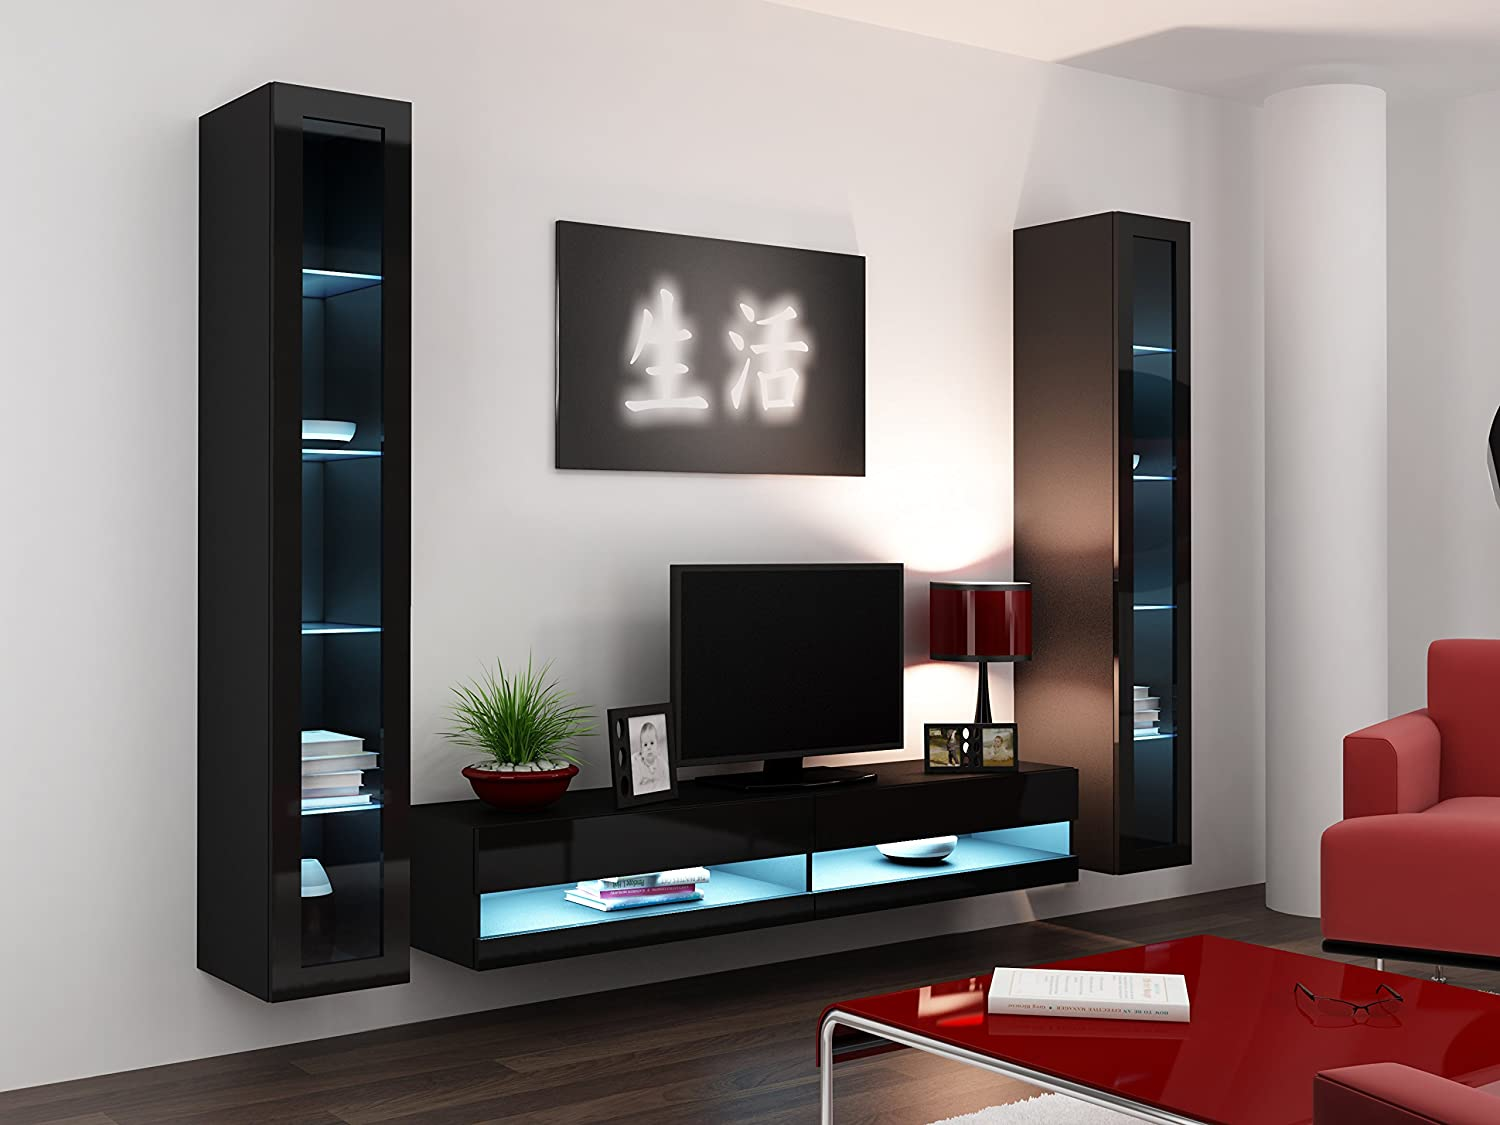 High Gloss Living Room Set With LED Lights | TV Stand | Wall Mounted  Cabinet   Modern Display Units Floating Design (Black, 2 Wall Units U0026 1 TV  Unit): ...